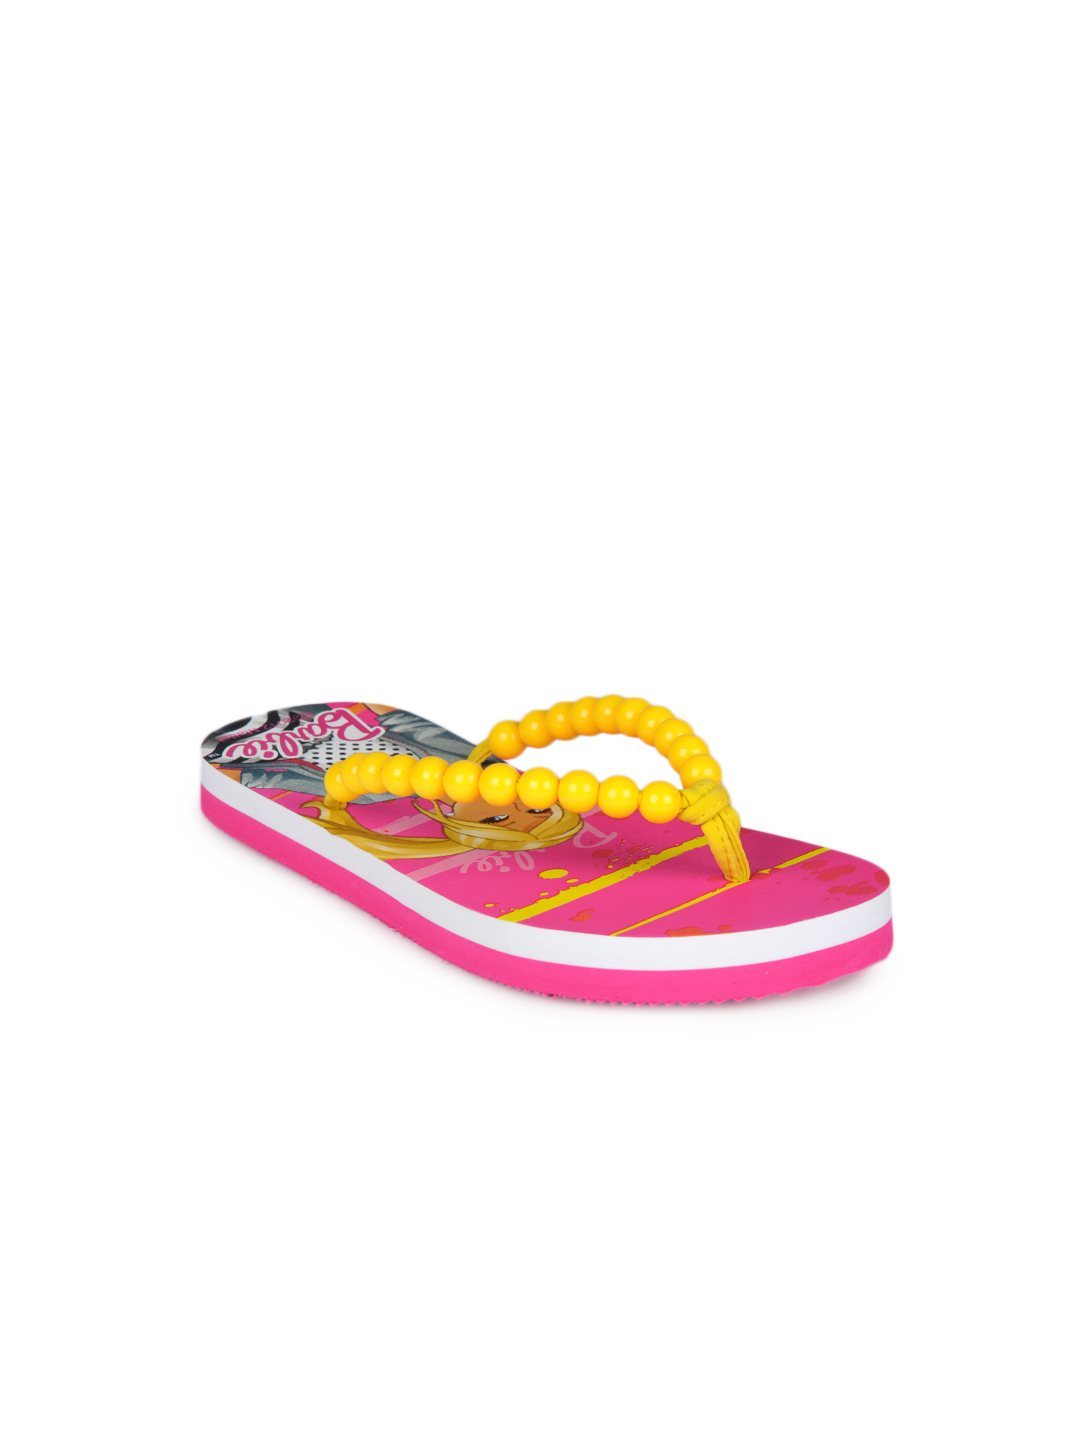 Barbie Girls Pink Flip Flops